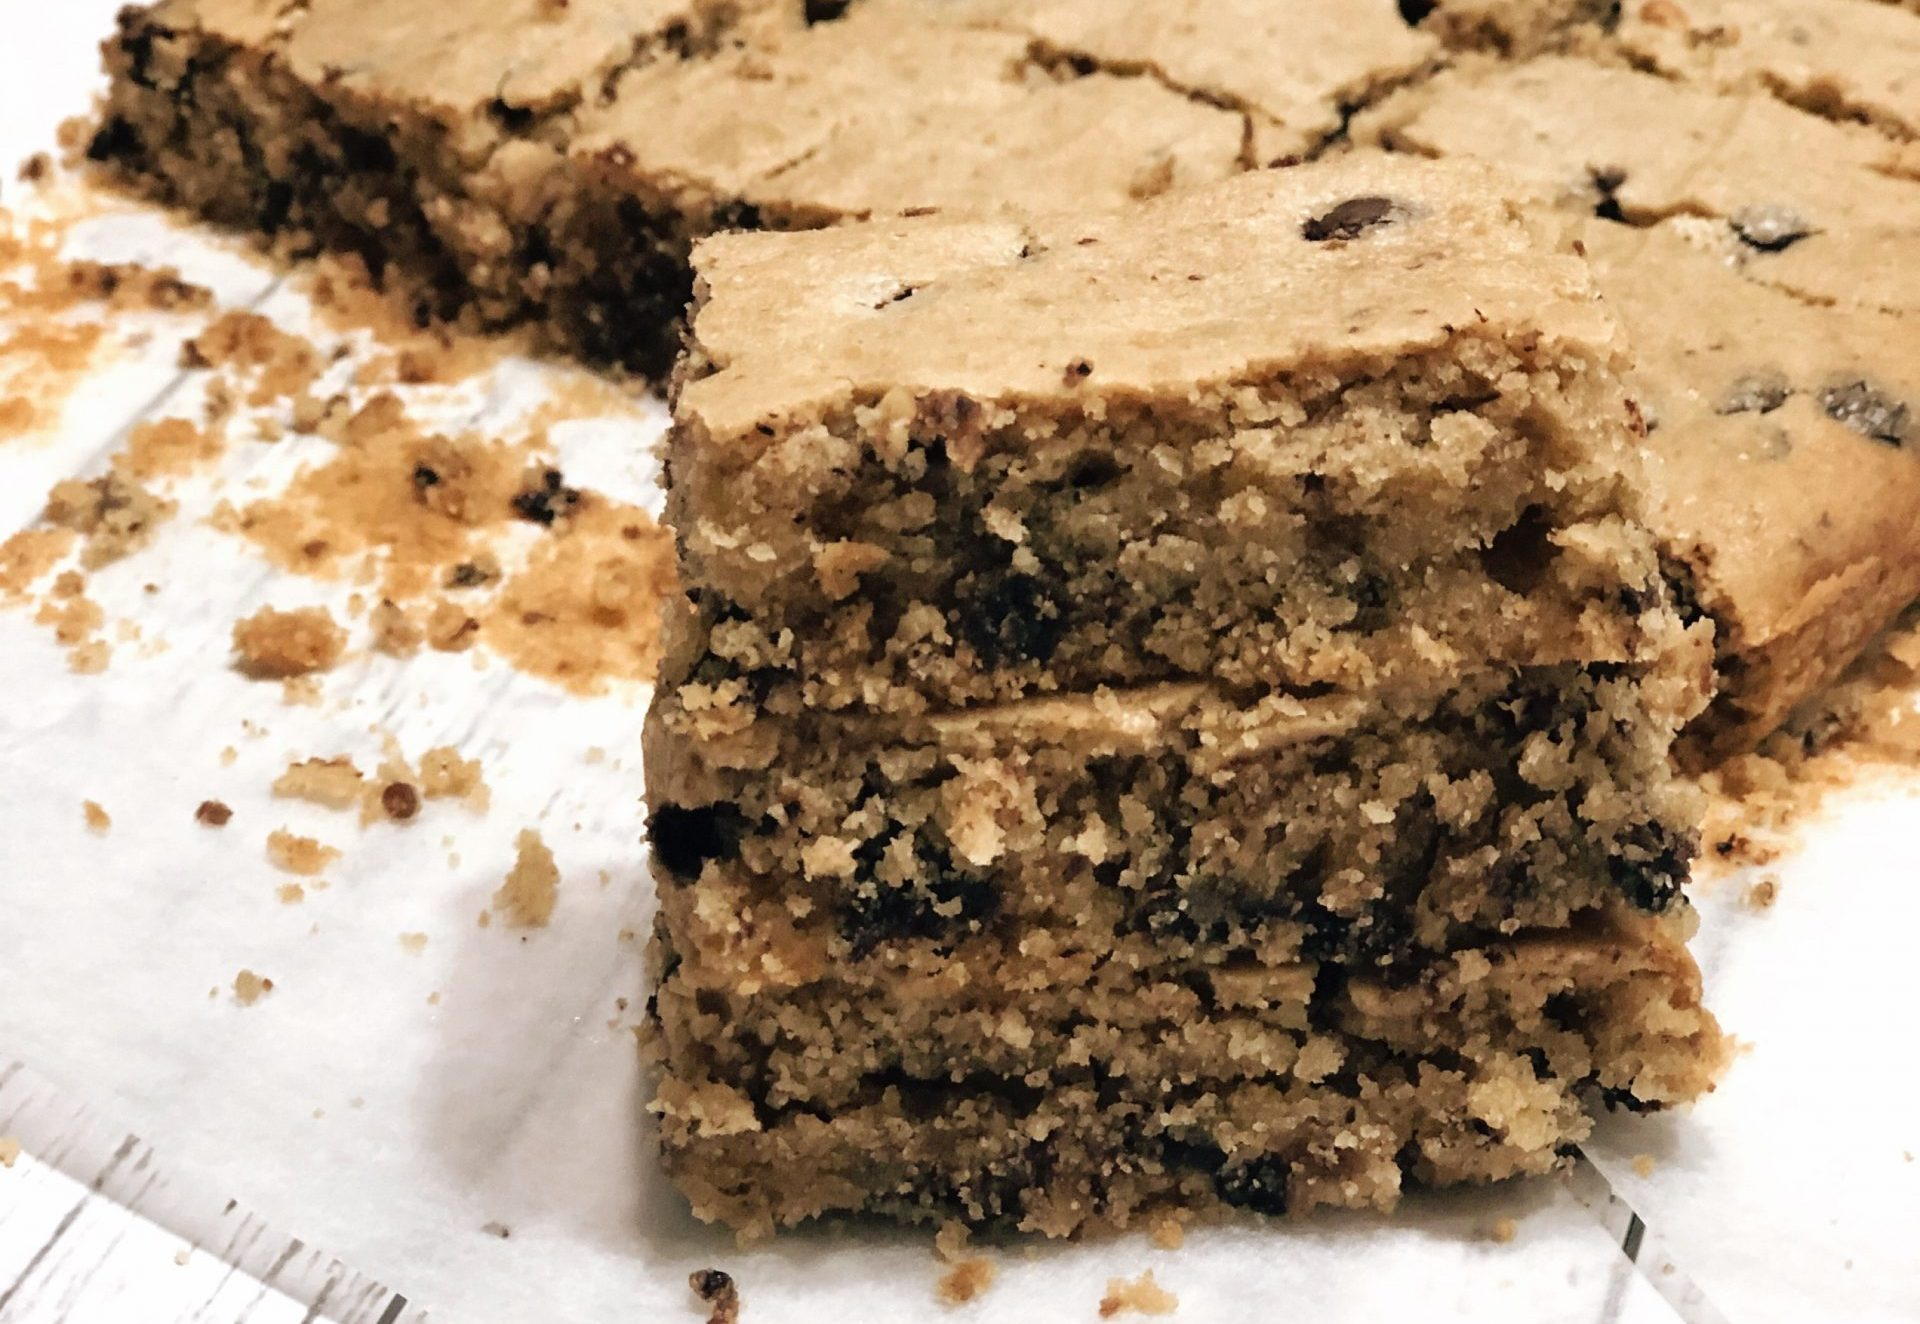 CHOC CHIP SHORTBREAD SLICE